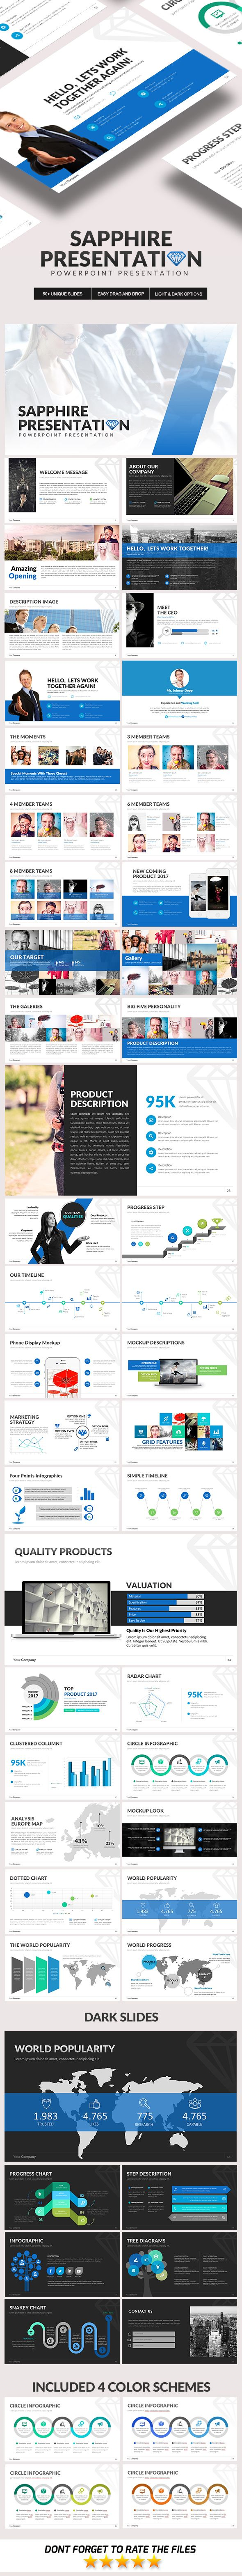 sapphire powerpoint template | business powerpoint templates, Modern powerpoint